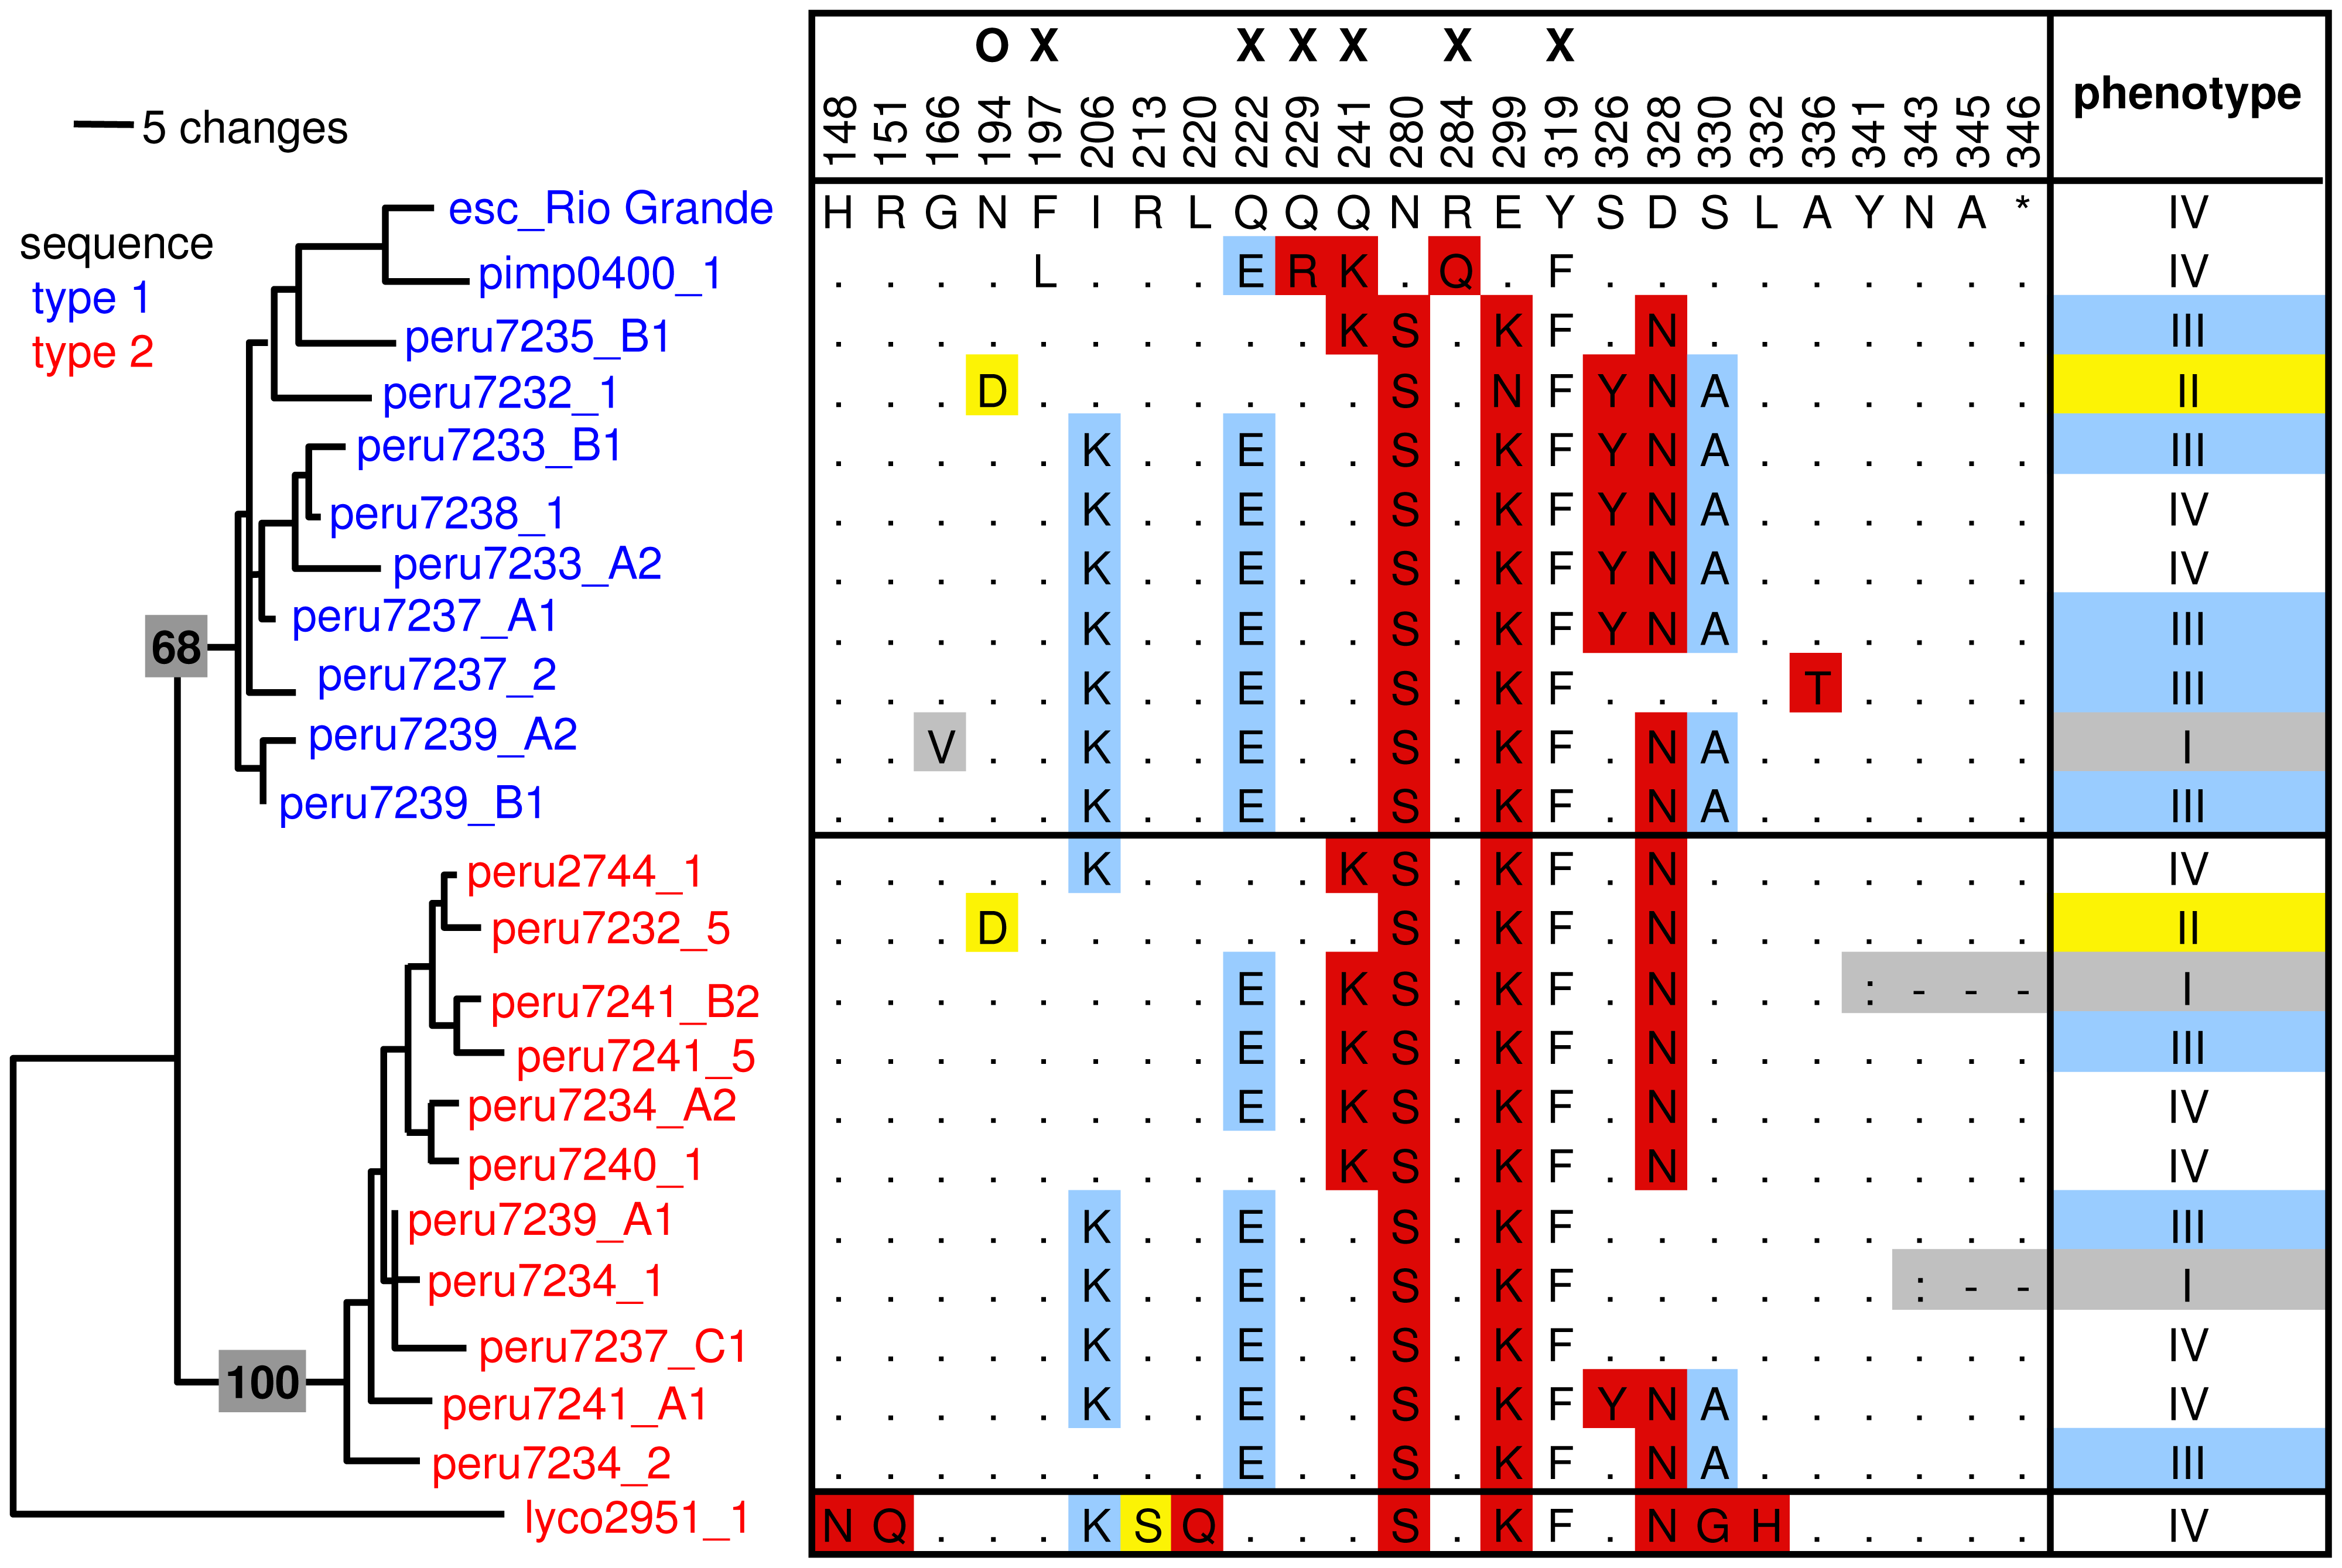 Overview of a subset of RCR3 protease domain haplotypes, their phenotype, and position in the <i>RCR3</i> gene tree.